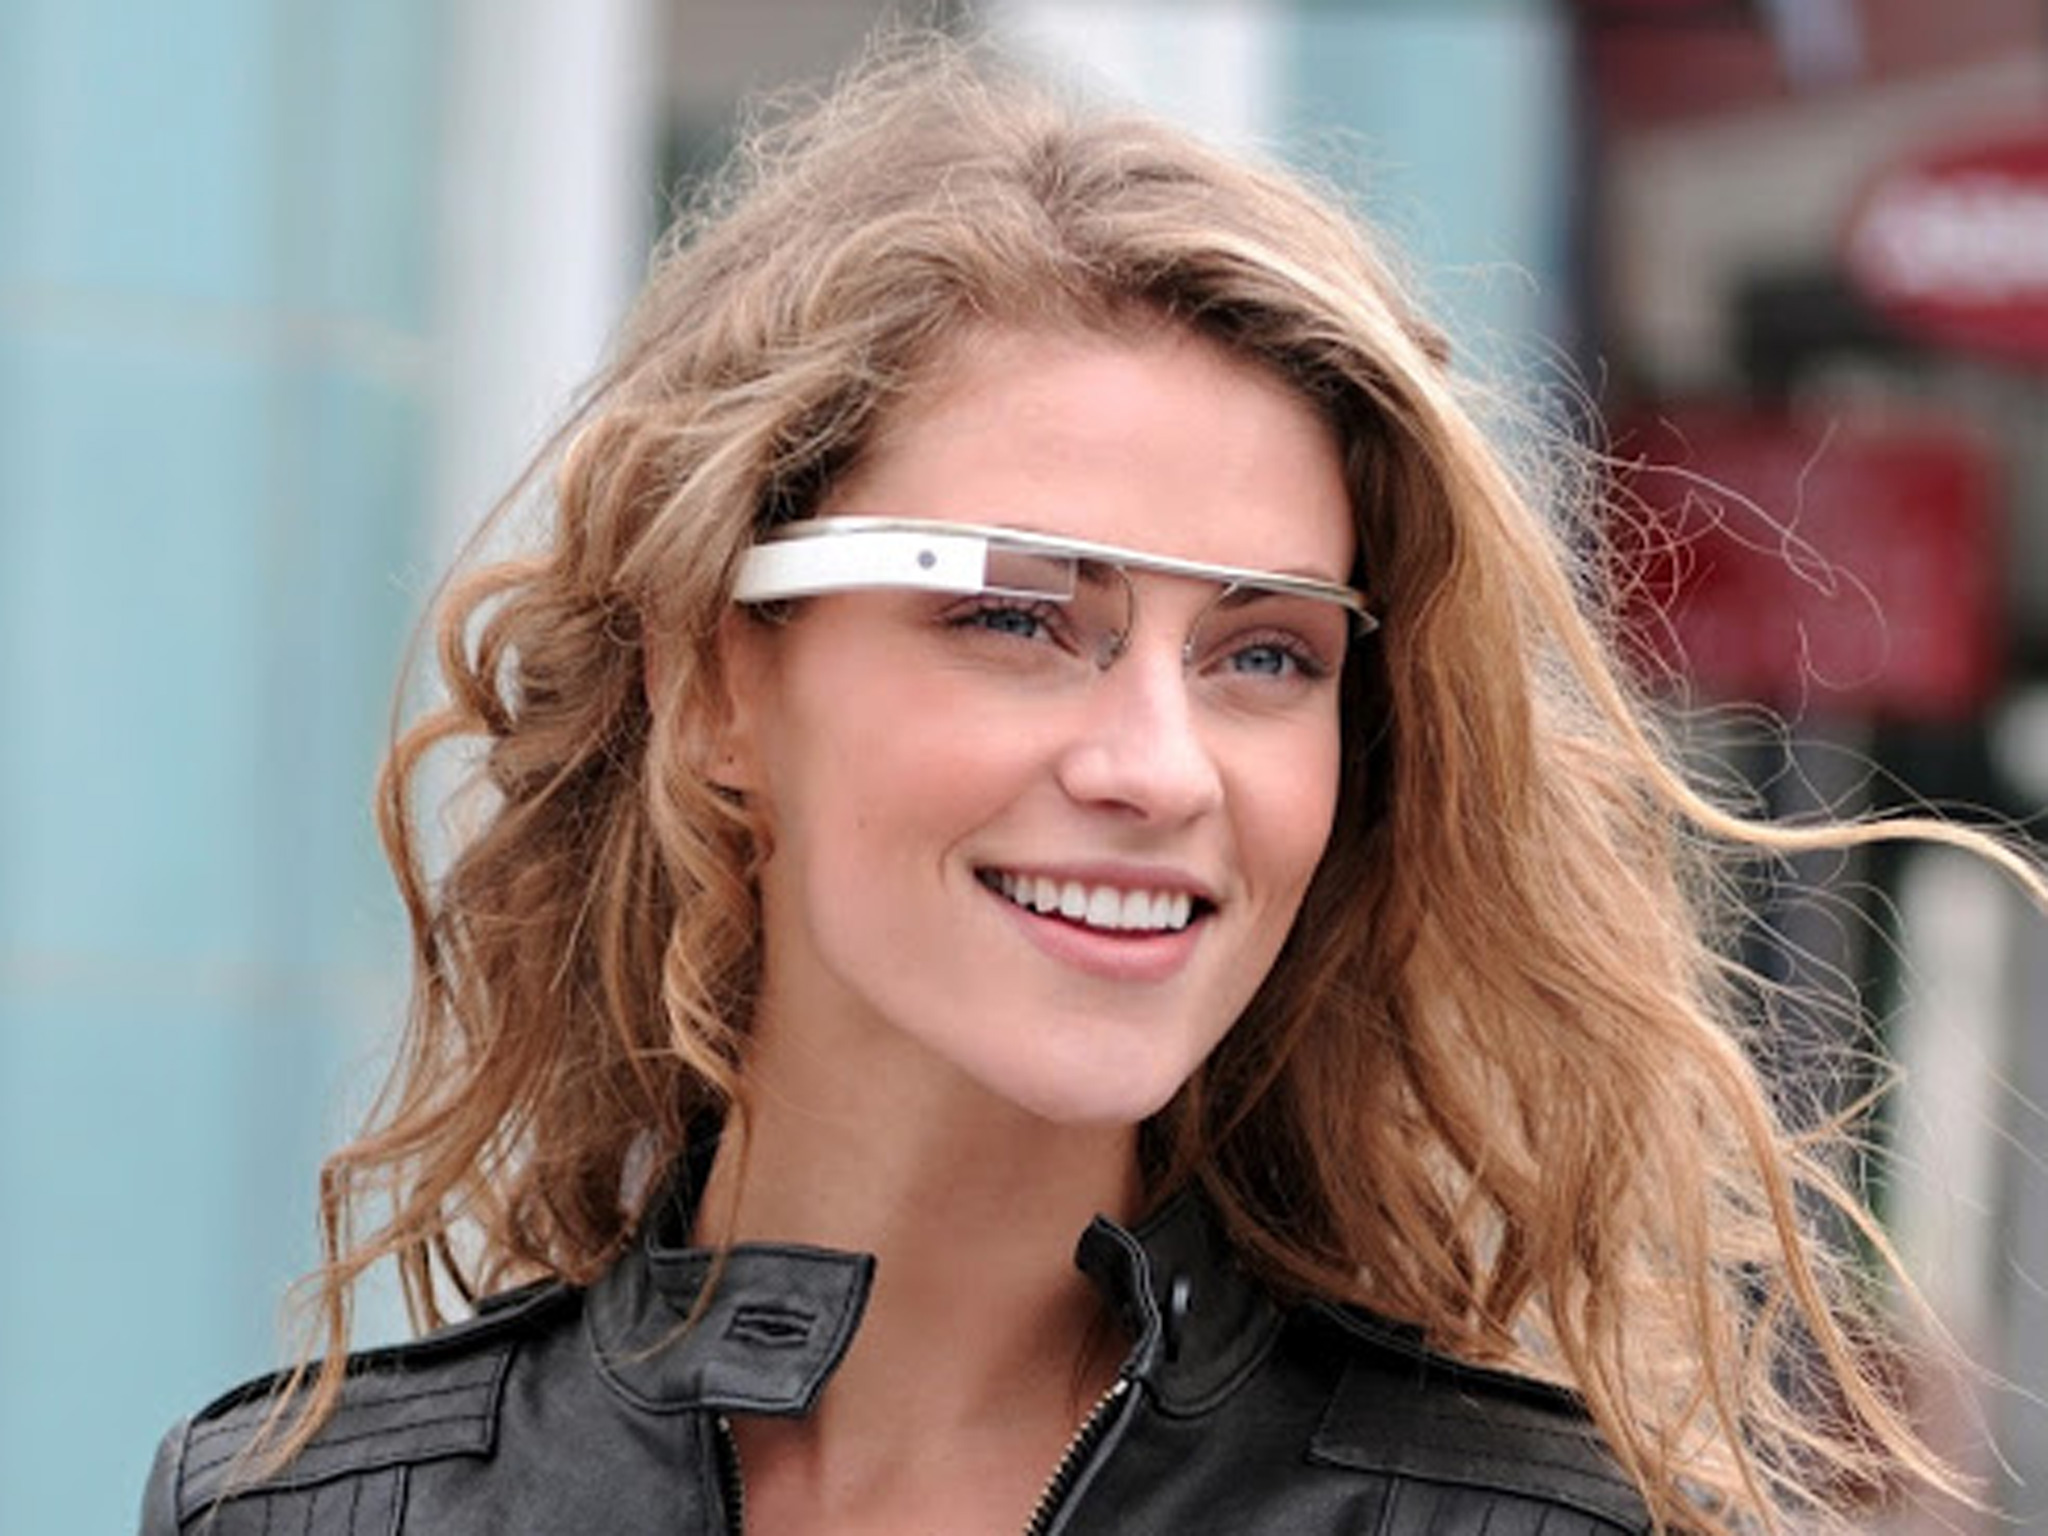 Google Glass für Hotelgäste - Innovativer Service für Sightseeing